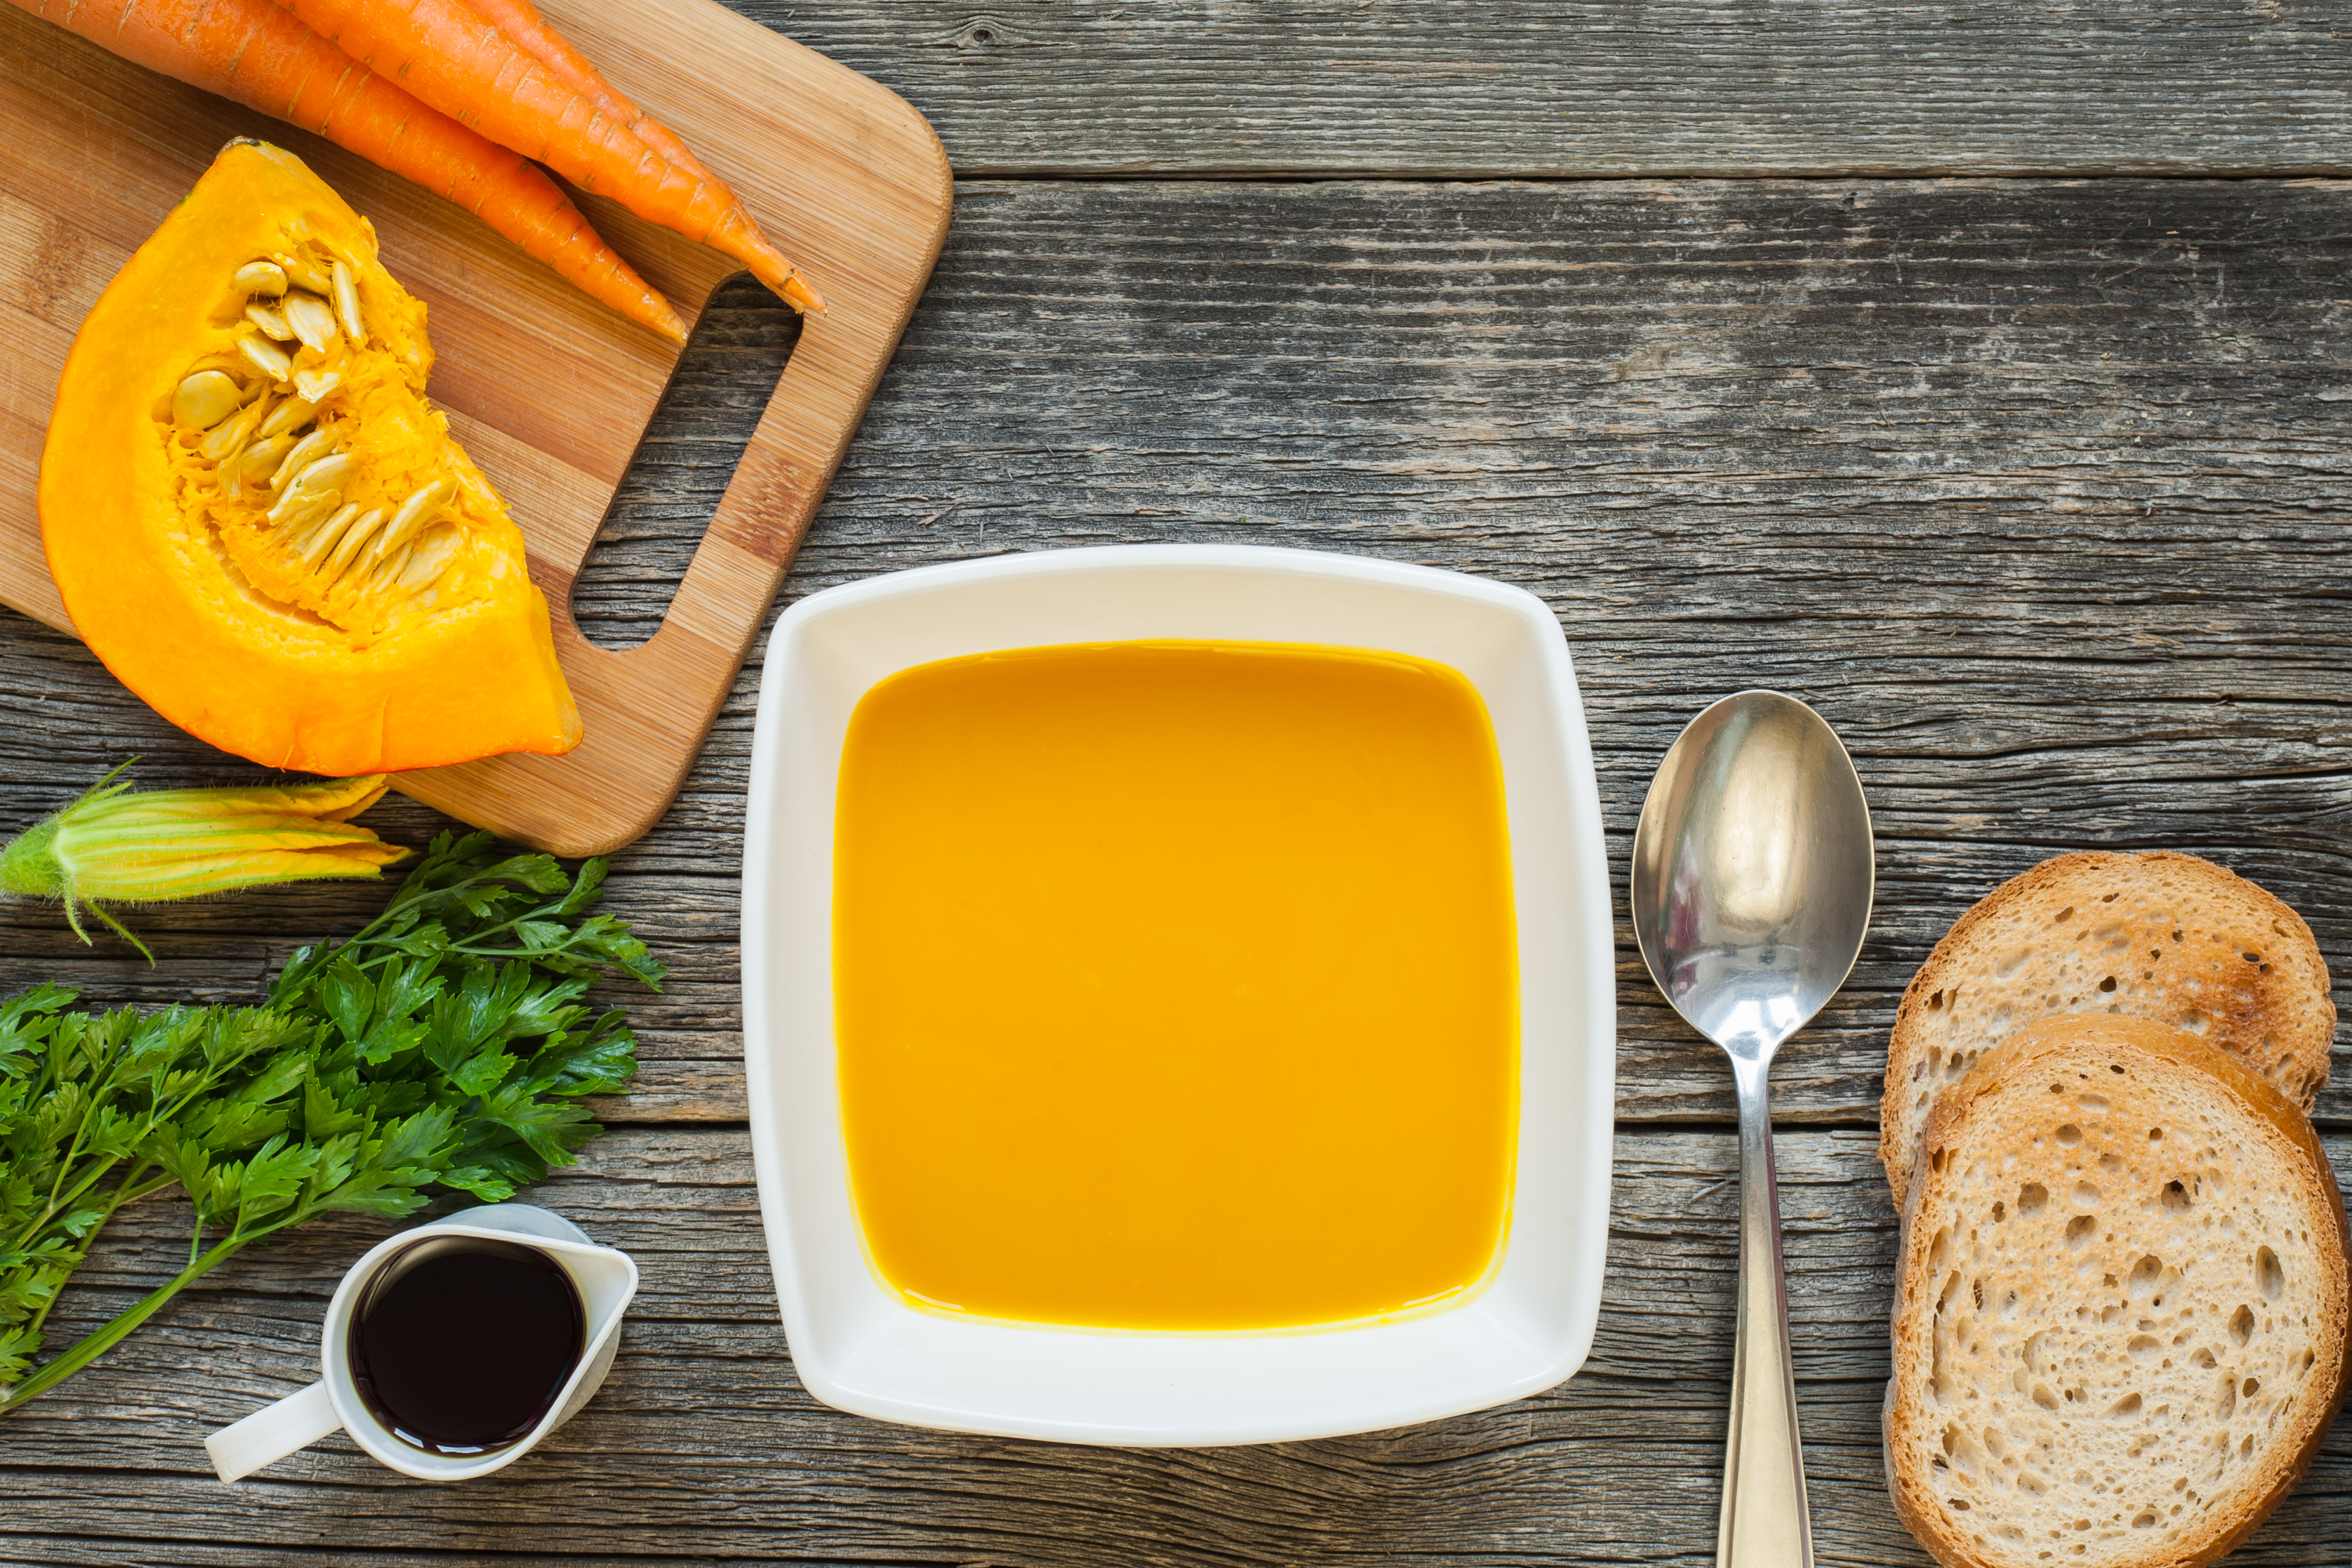 Hokkaido pumpkin soup in a white ceramic bowl with toasted bread